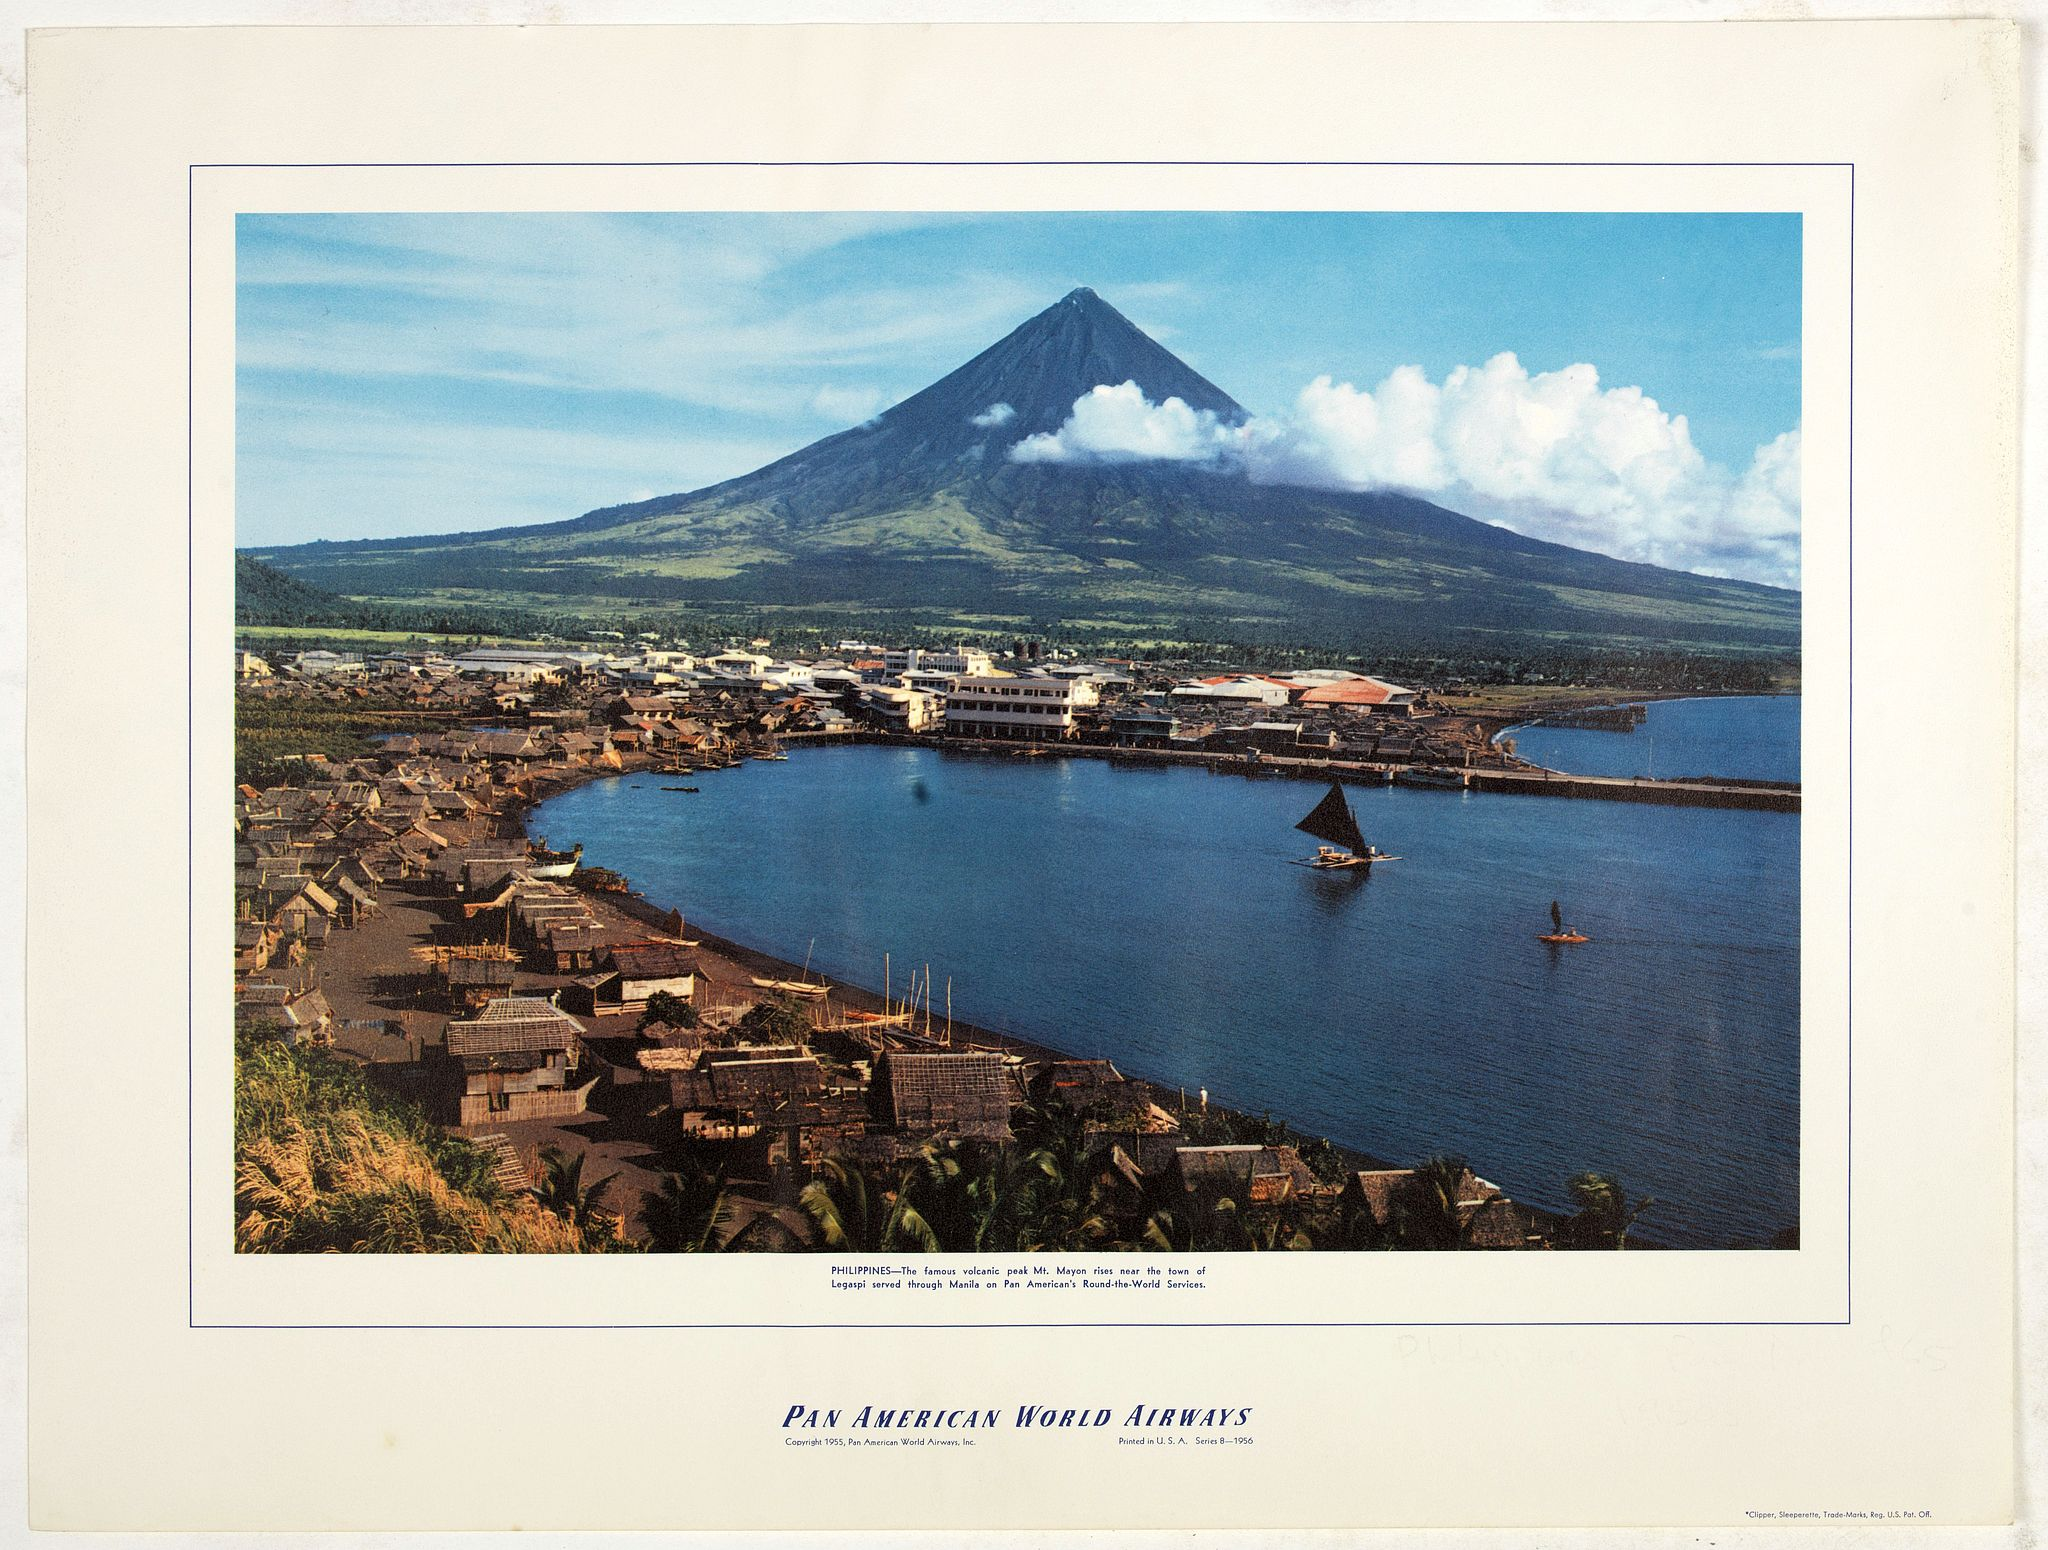 PAN AMERICAN WORLD AIRLINES -  Philippines - The famous volcanic peak Mt. Mayon. . .